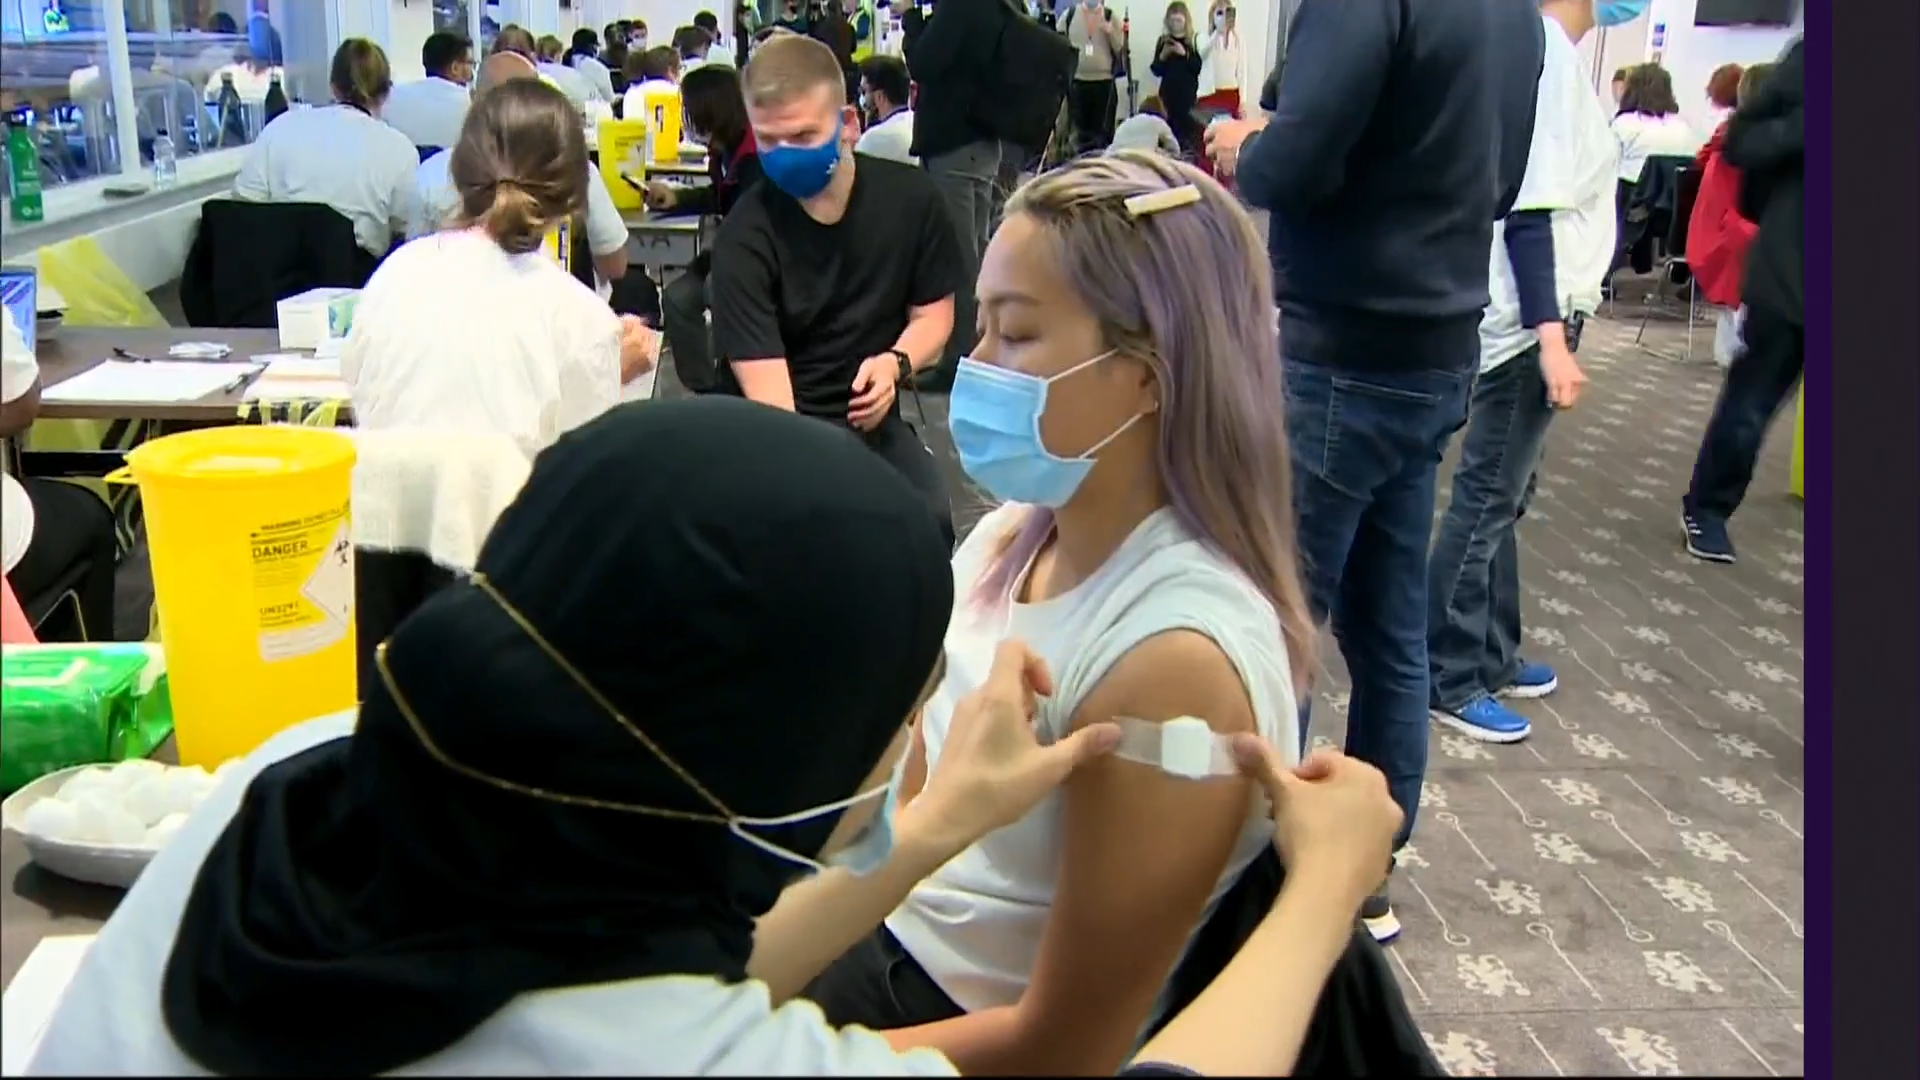 Over-18s in England asked to get Covid jab as mass vaccination events set up across London - channel 4